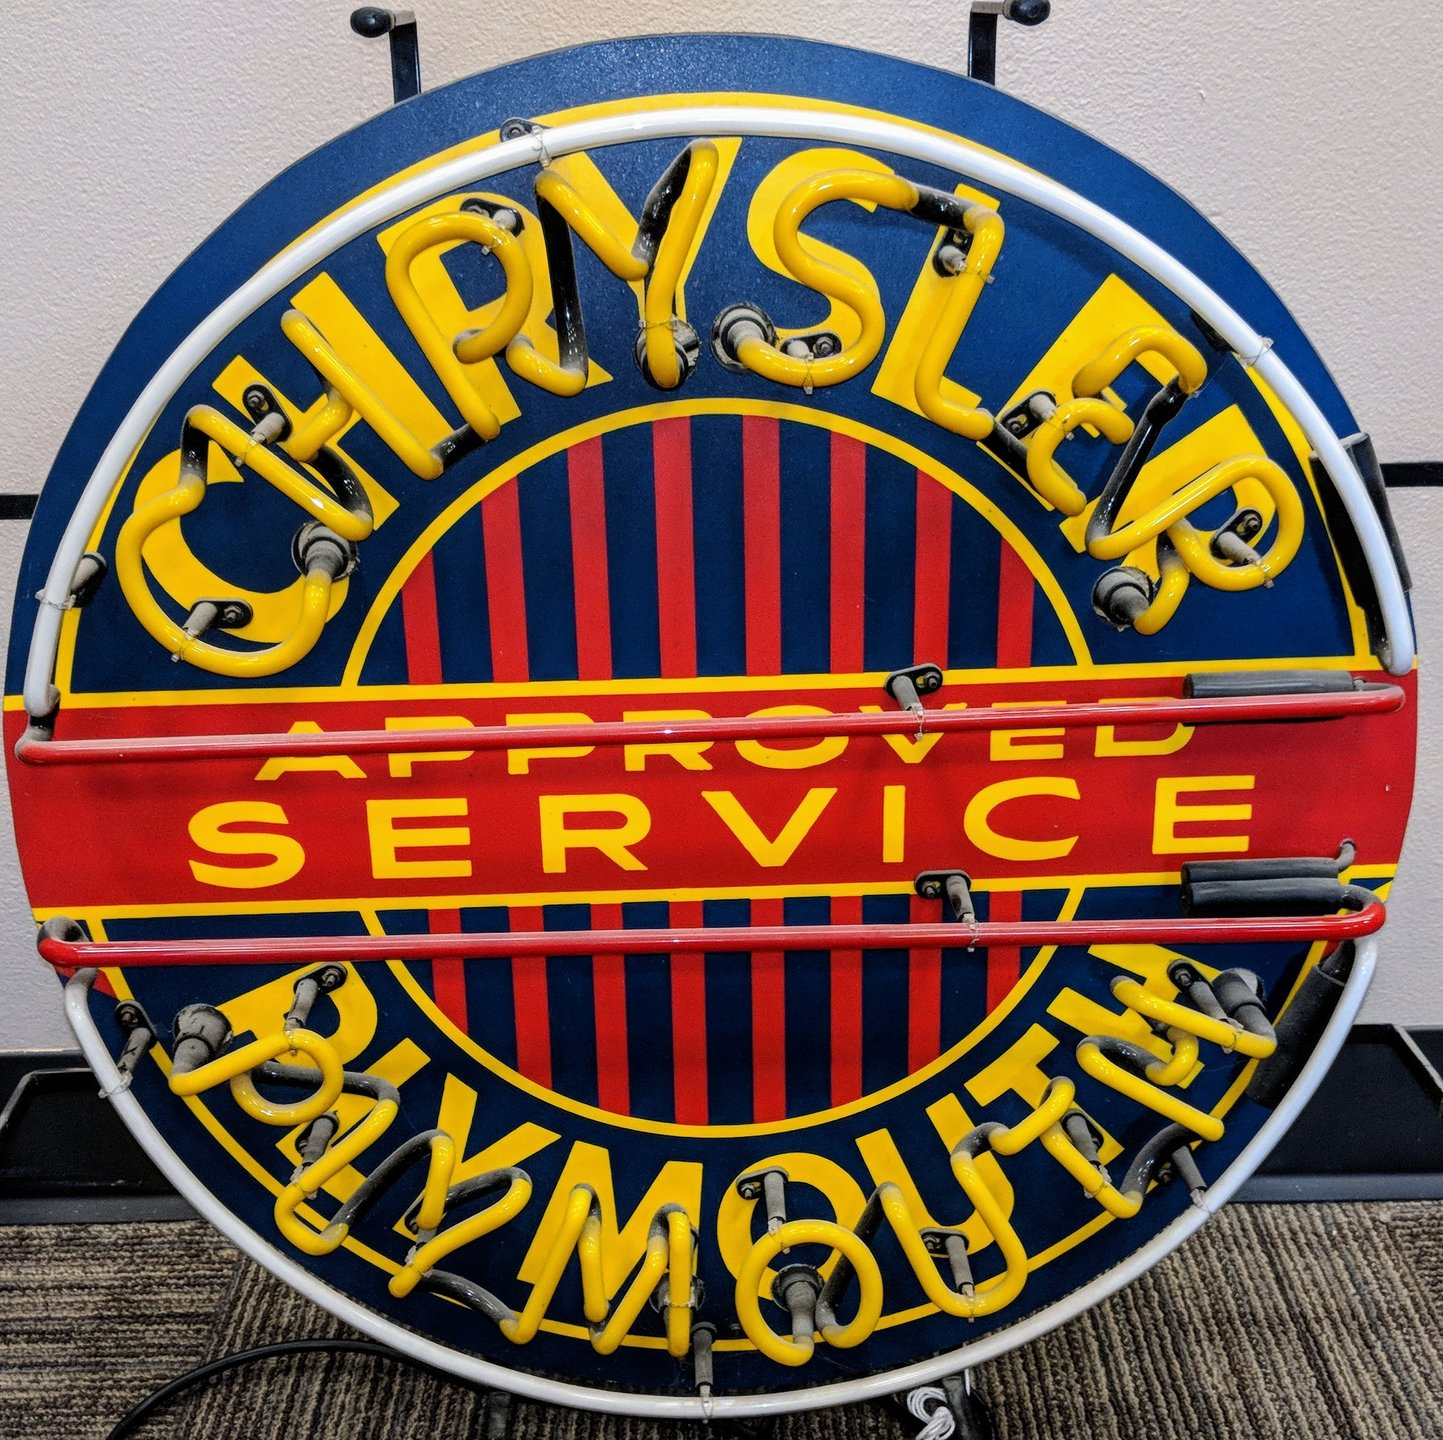 Chrysler plymouth service neon sign